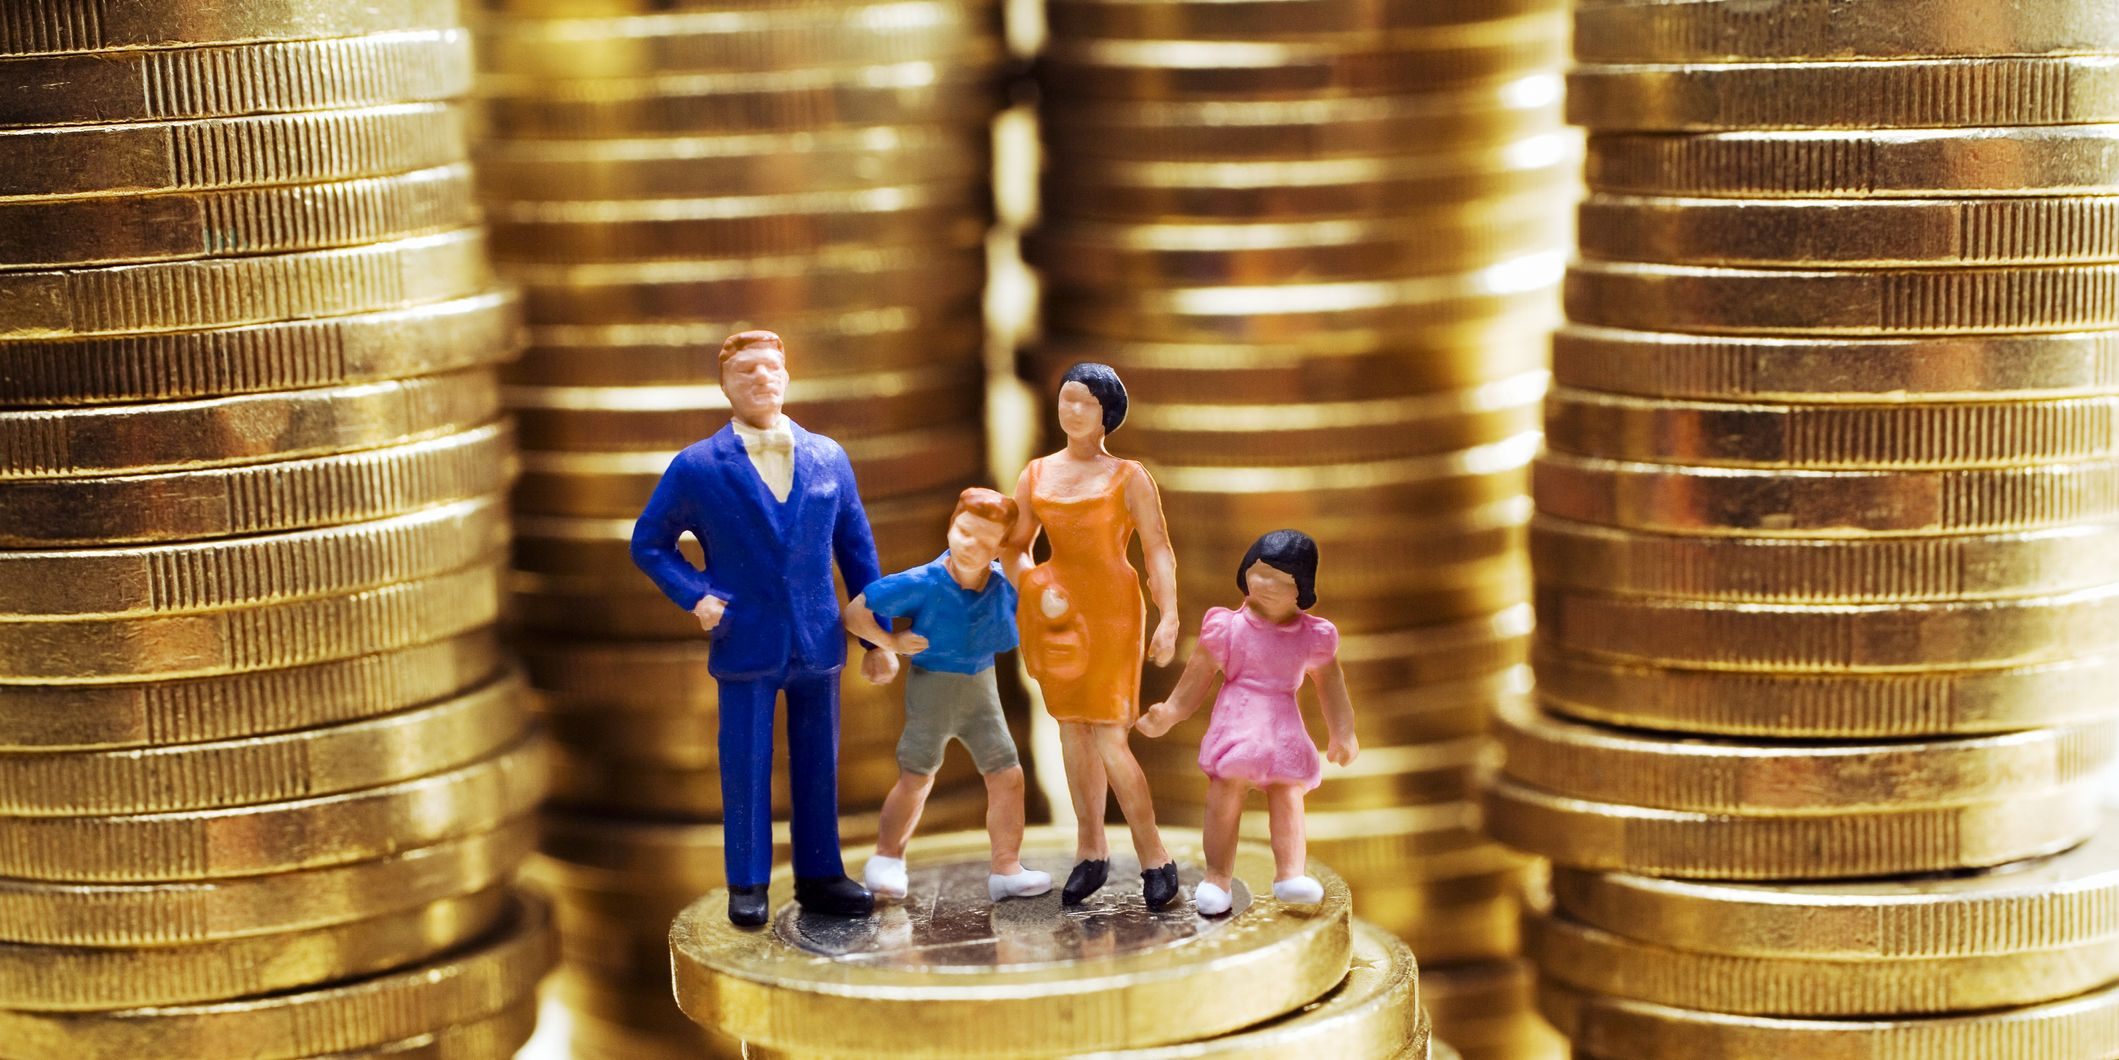 Family figurines on stack on Euro coins